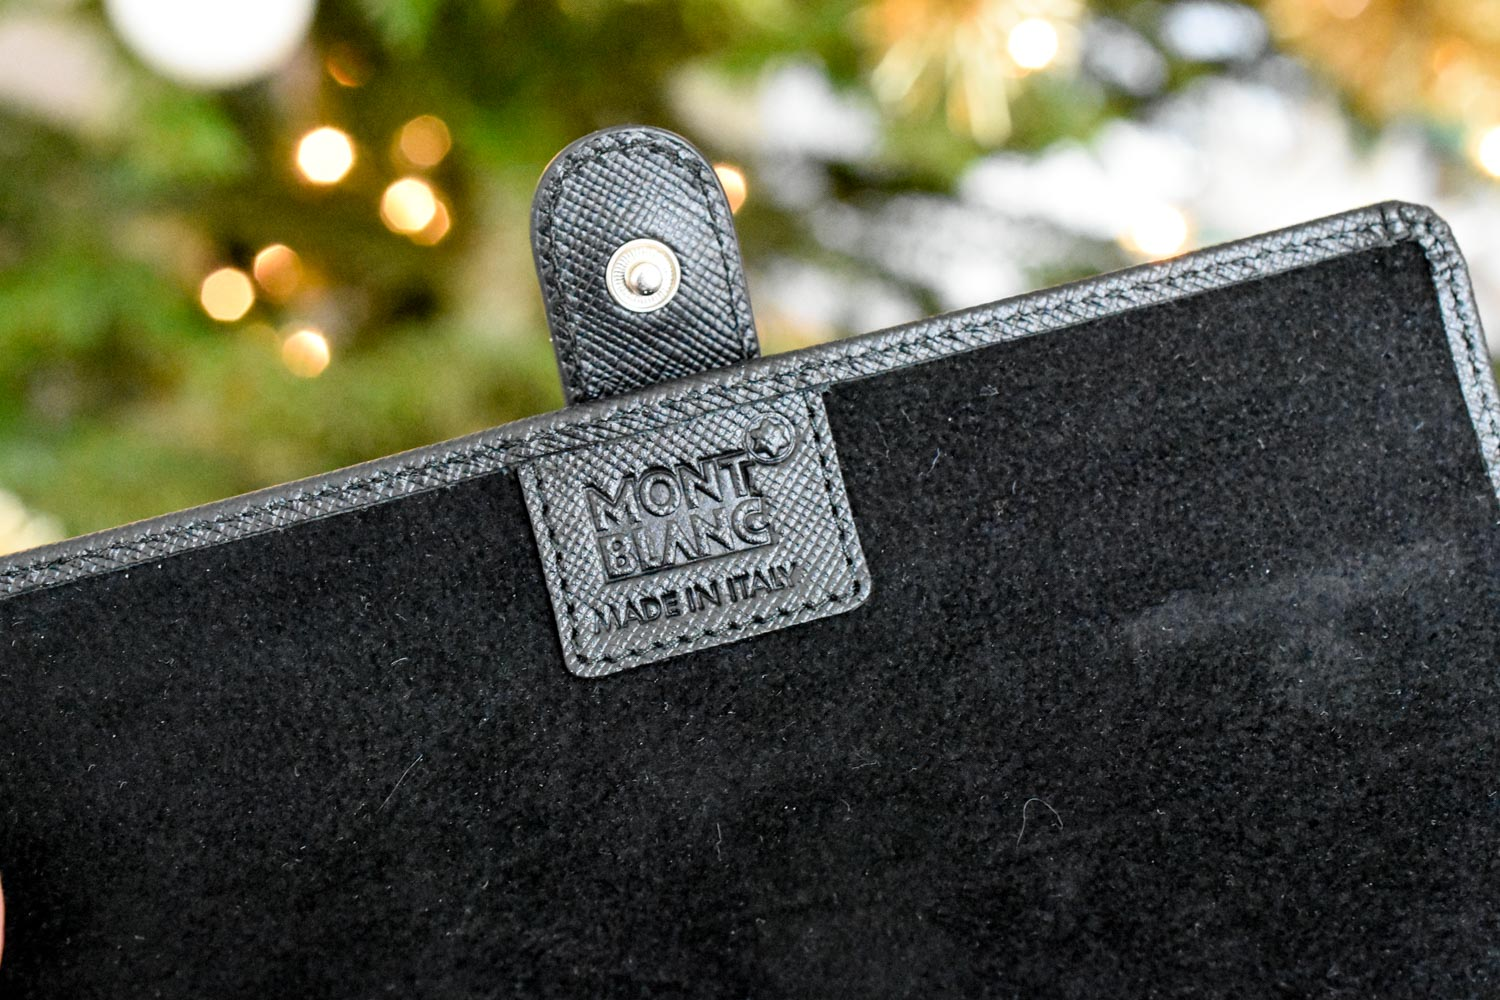 Montblanc watch pouch-0270